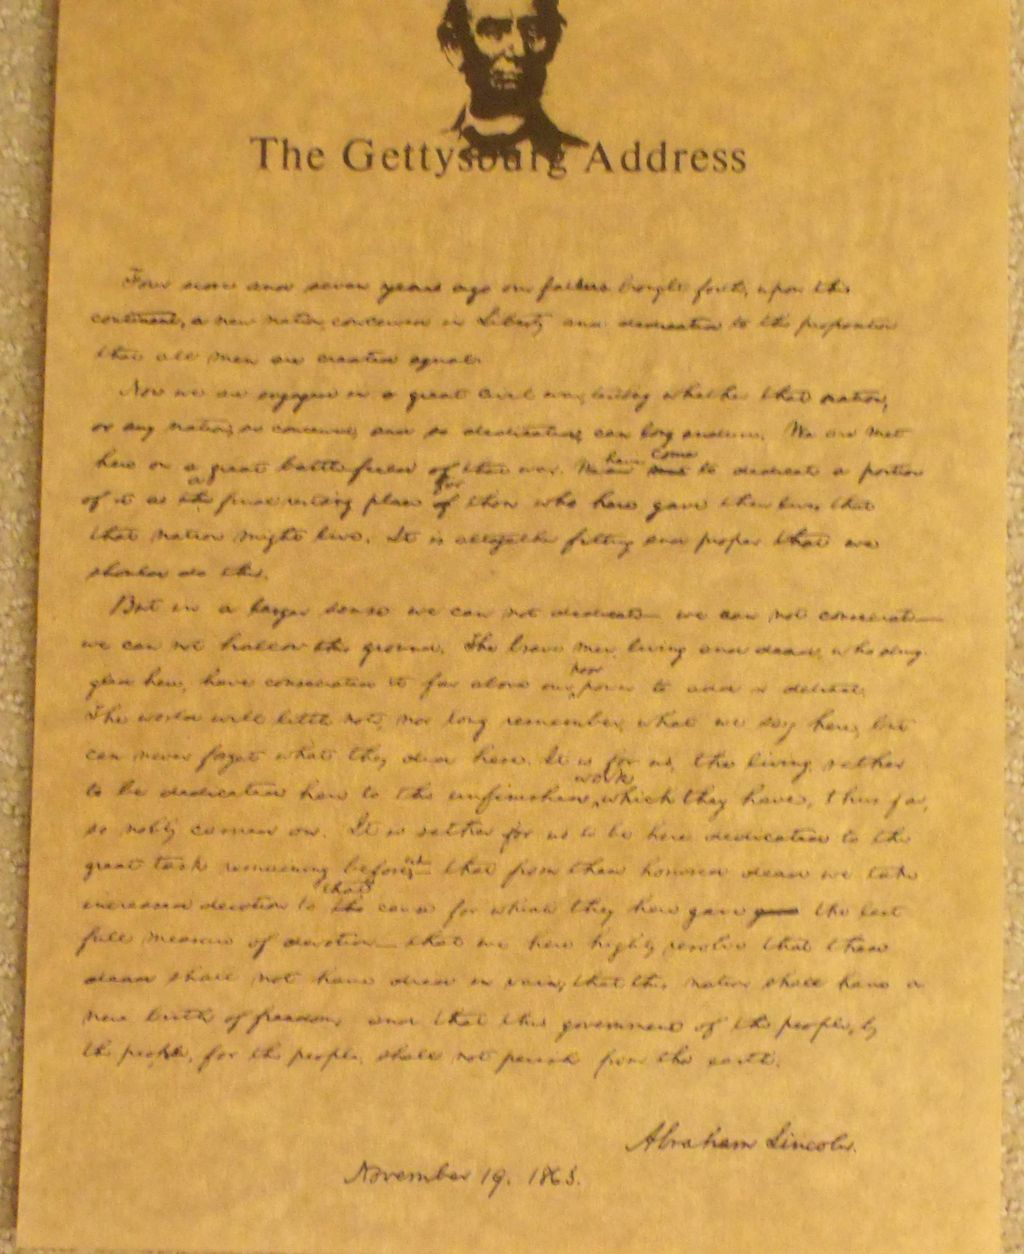 a description of the gettysburg address Lincoln's gettysburg address lesson plans and teaching resources - free english learning and teaching resources from varsity tutors.